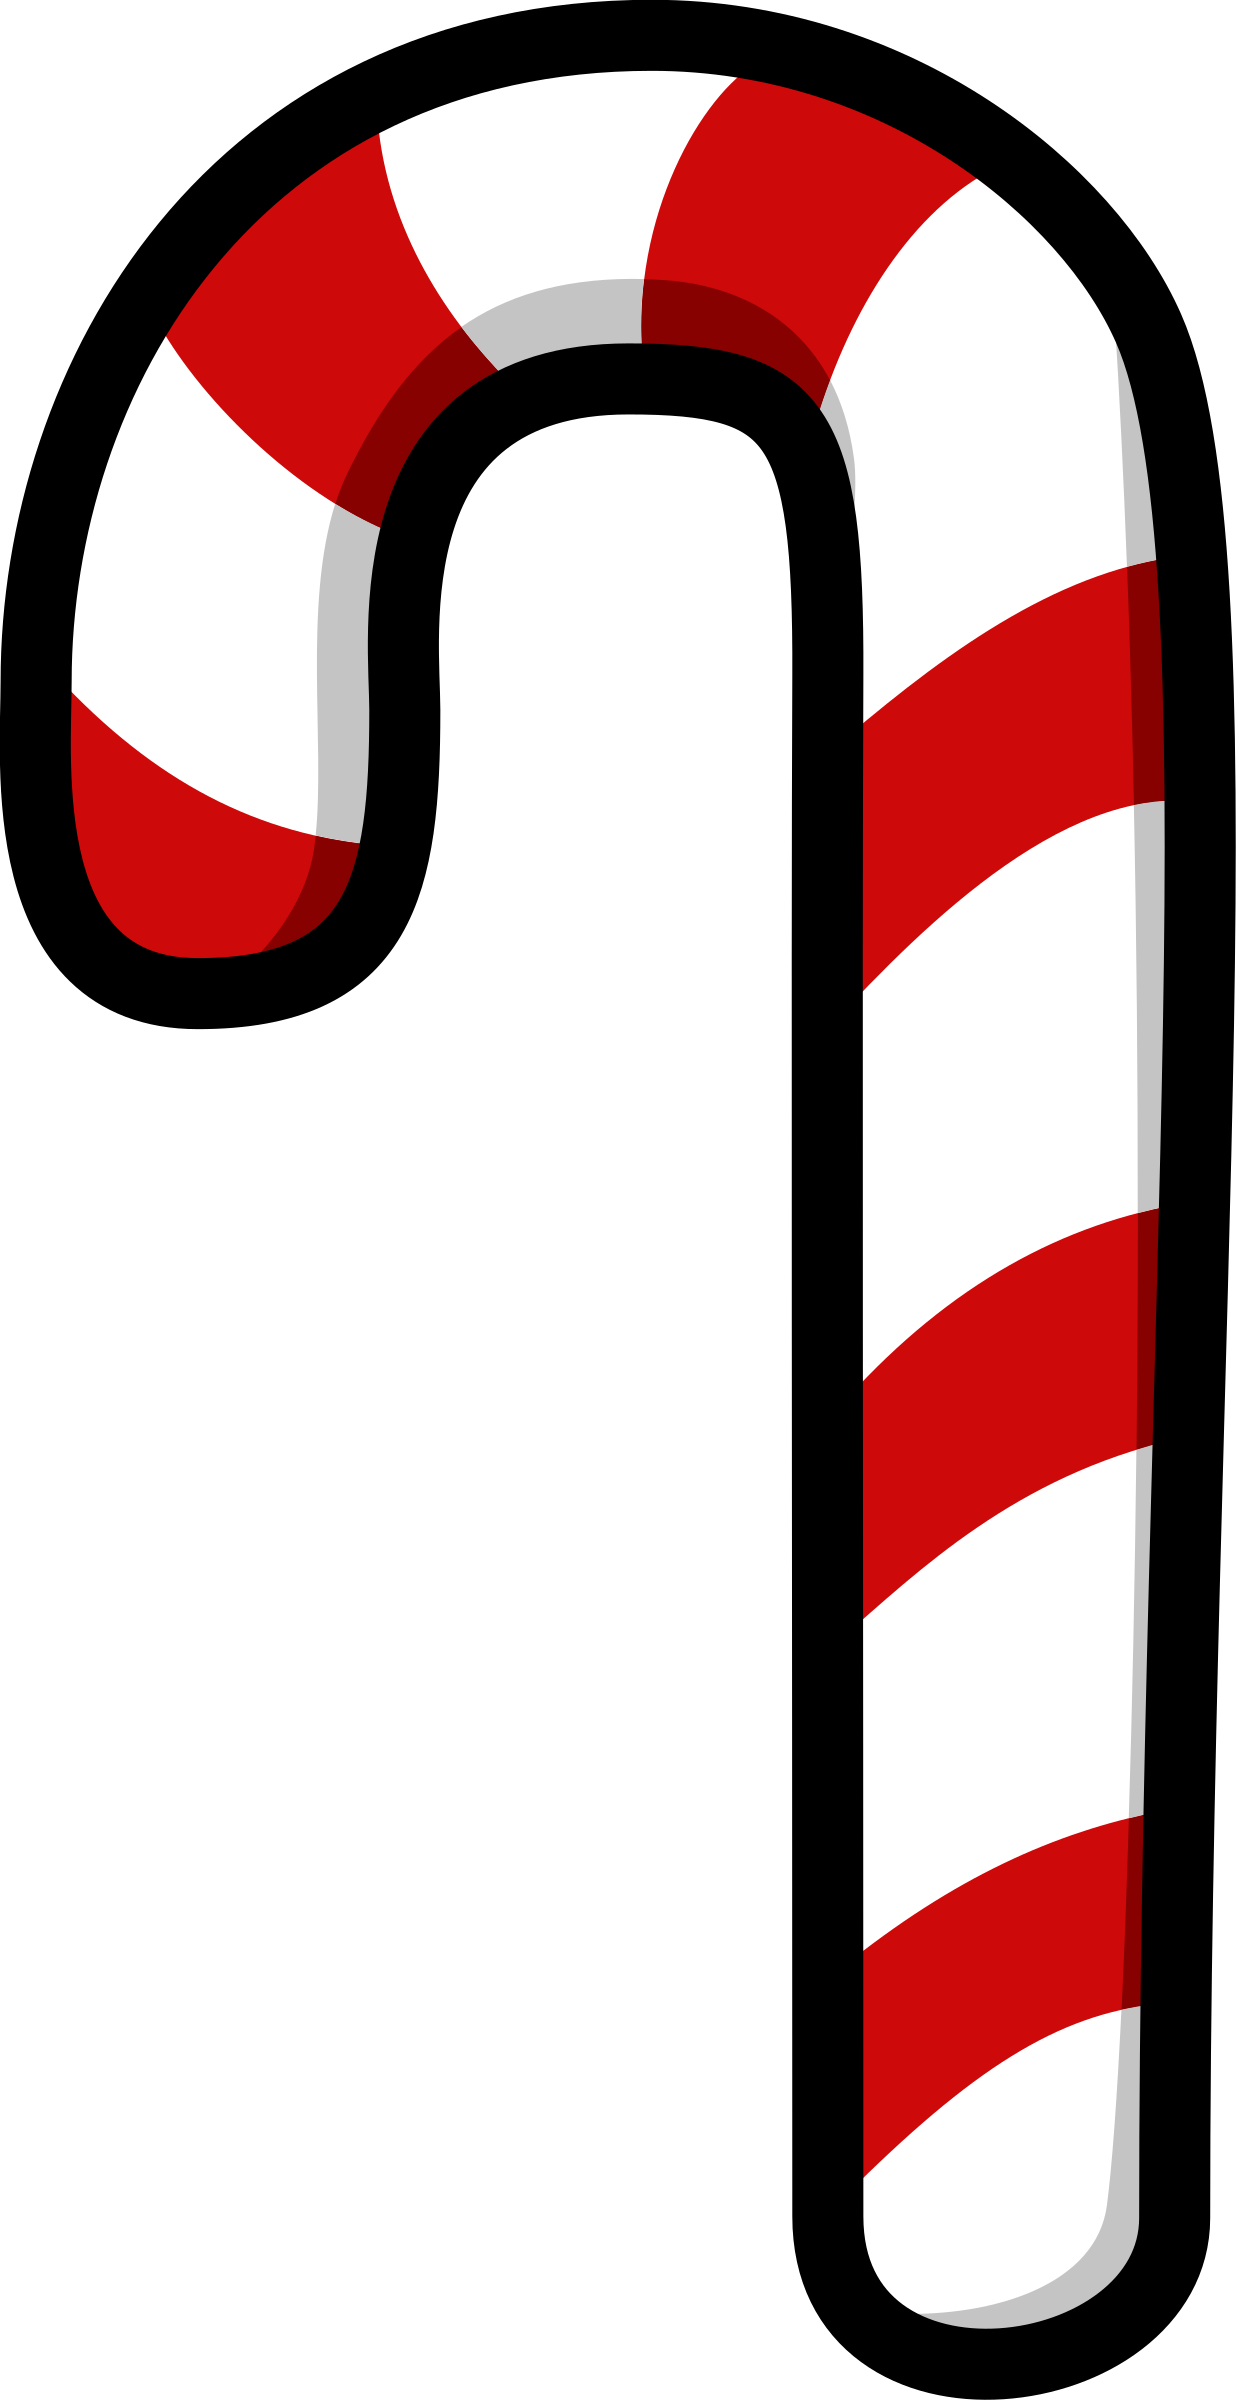 Net clipart small. Candy cane